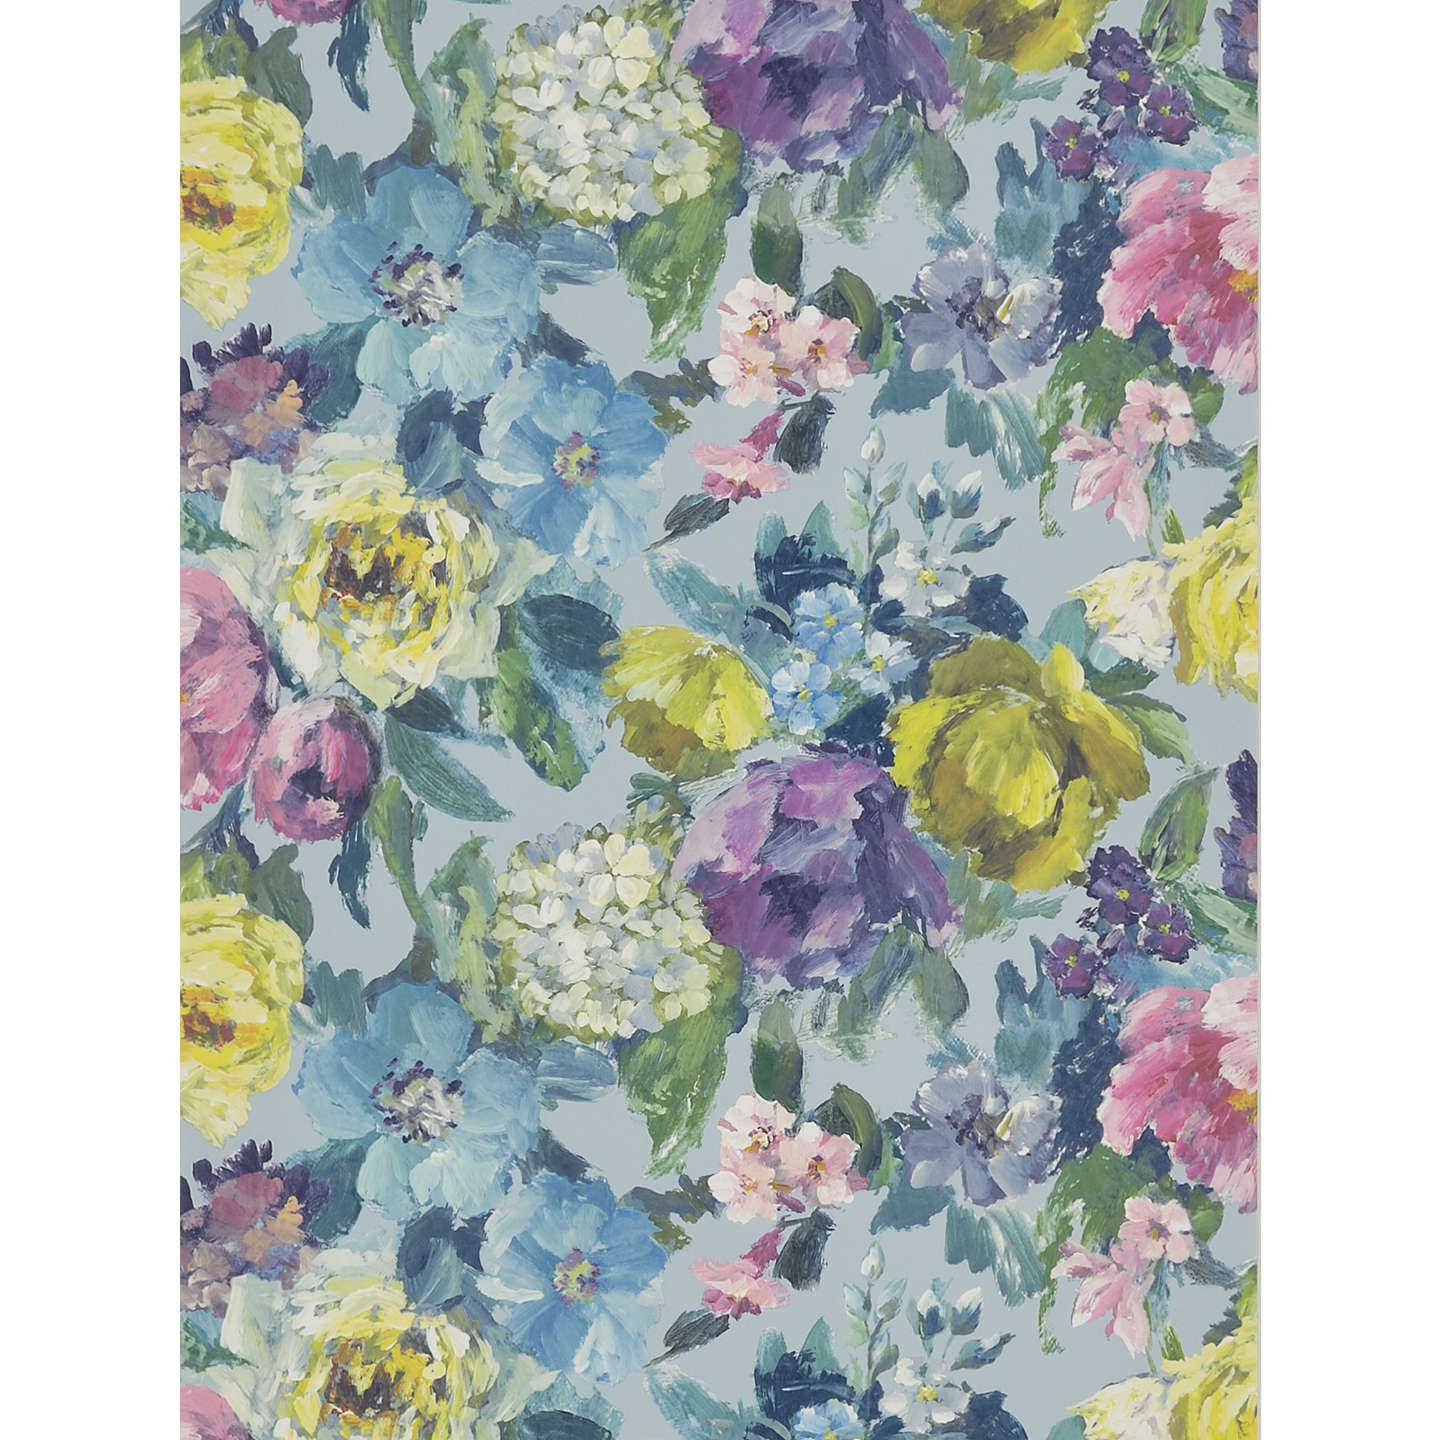 BuyDesigners Guild Roseto Wallpaper Celadon PDG675 01 Online At Johnlewis